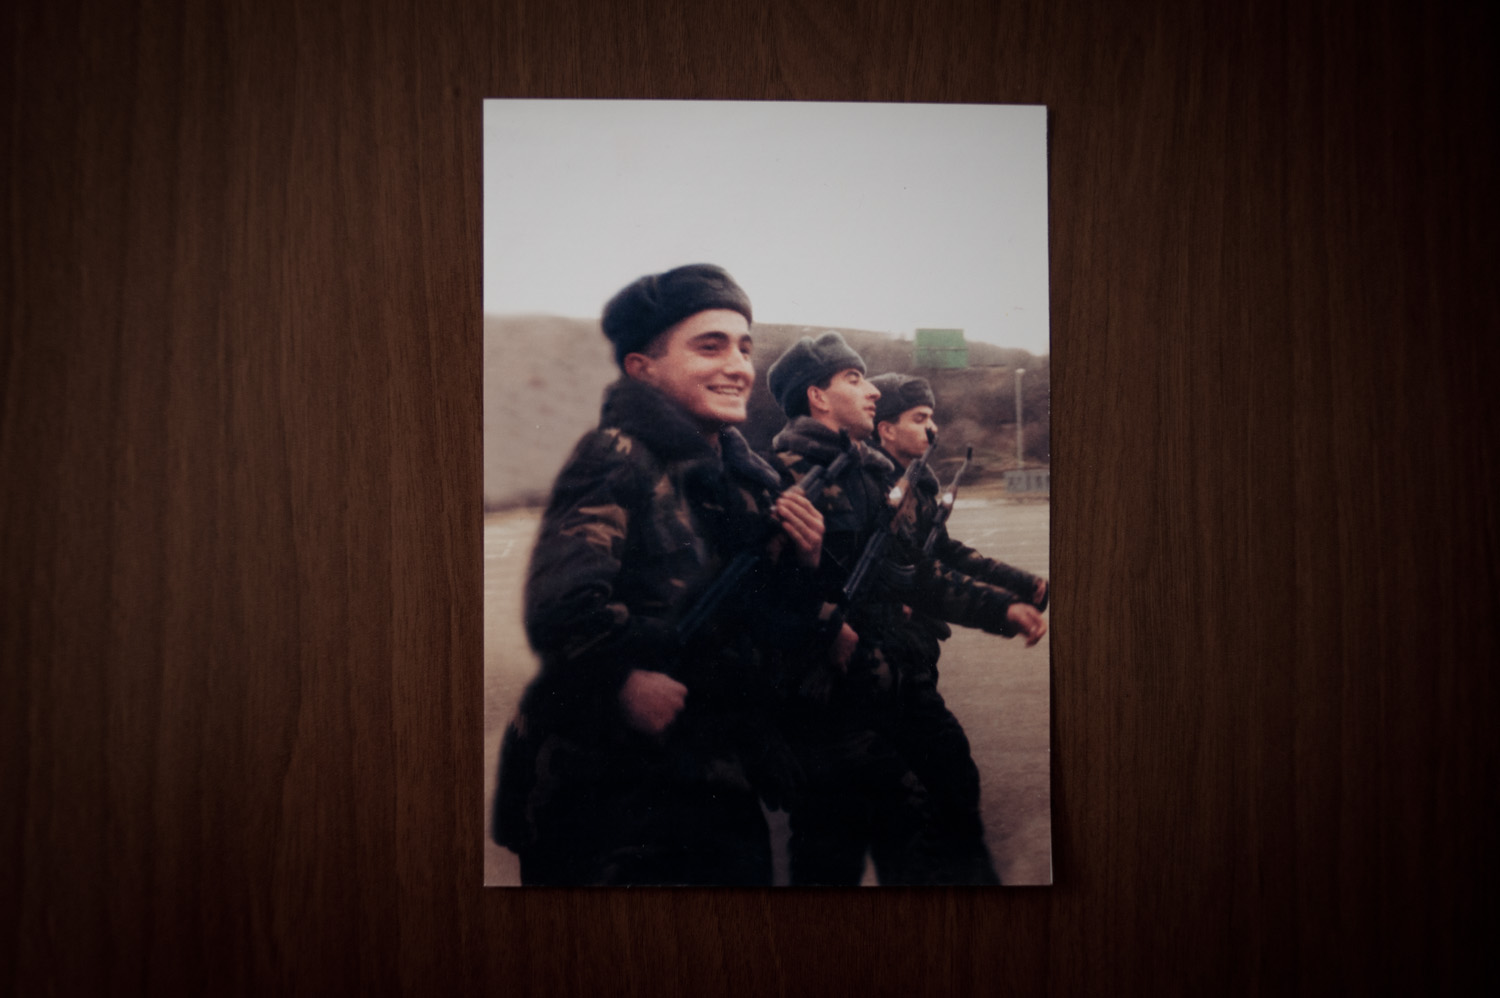 Nana's son Valery loved being a soldier. The family had decided to leave Armenia after his military service but Valery had convinced them to stay so that he could become a contract officer.